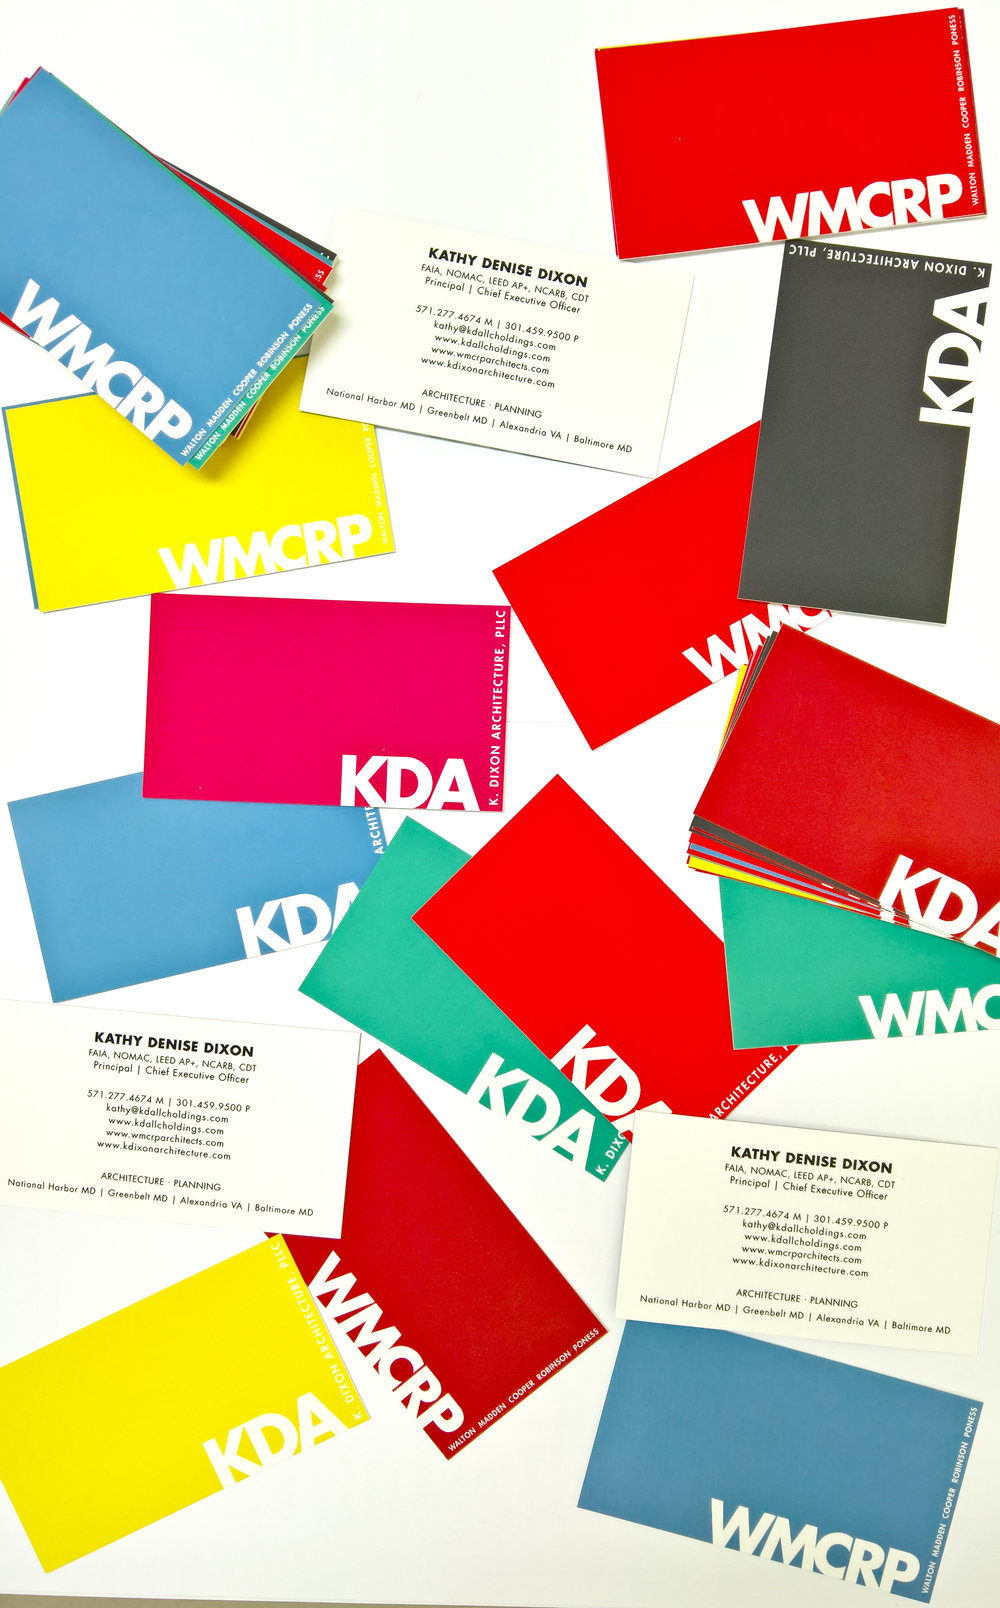 New Business Cards (FAIA) just arrived! — KDixonArchitecture